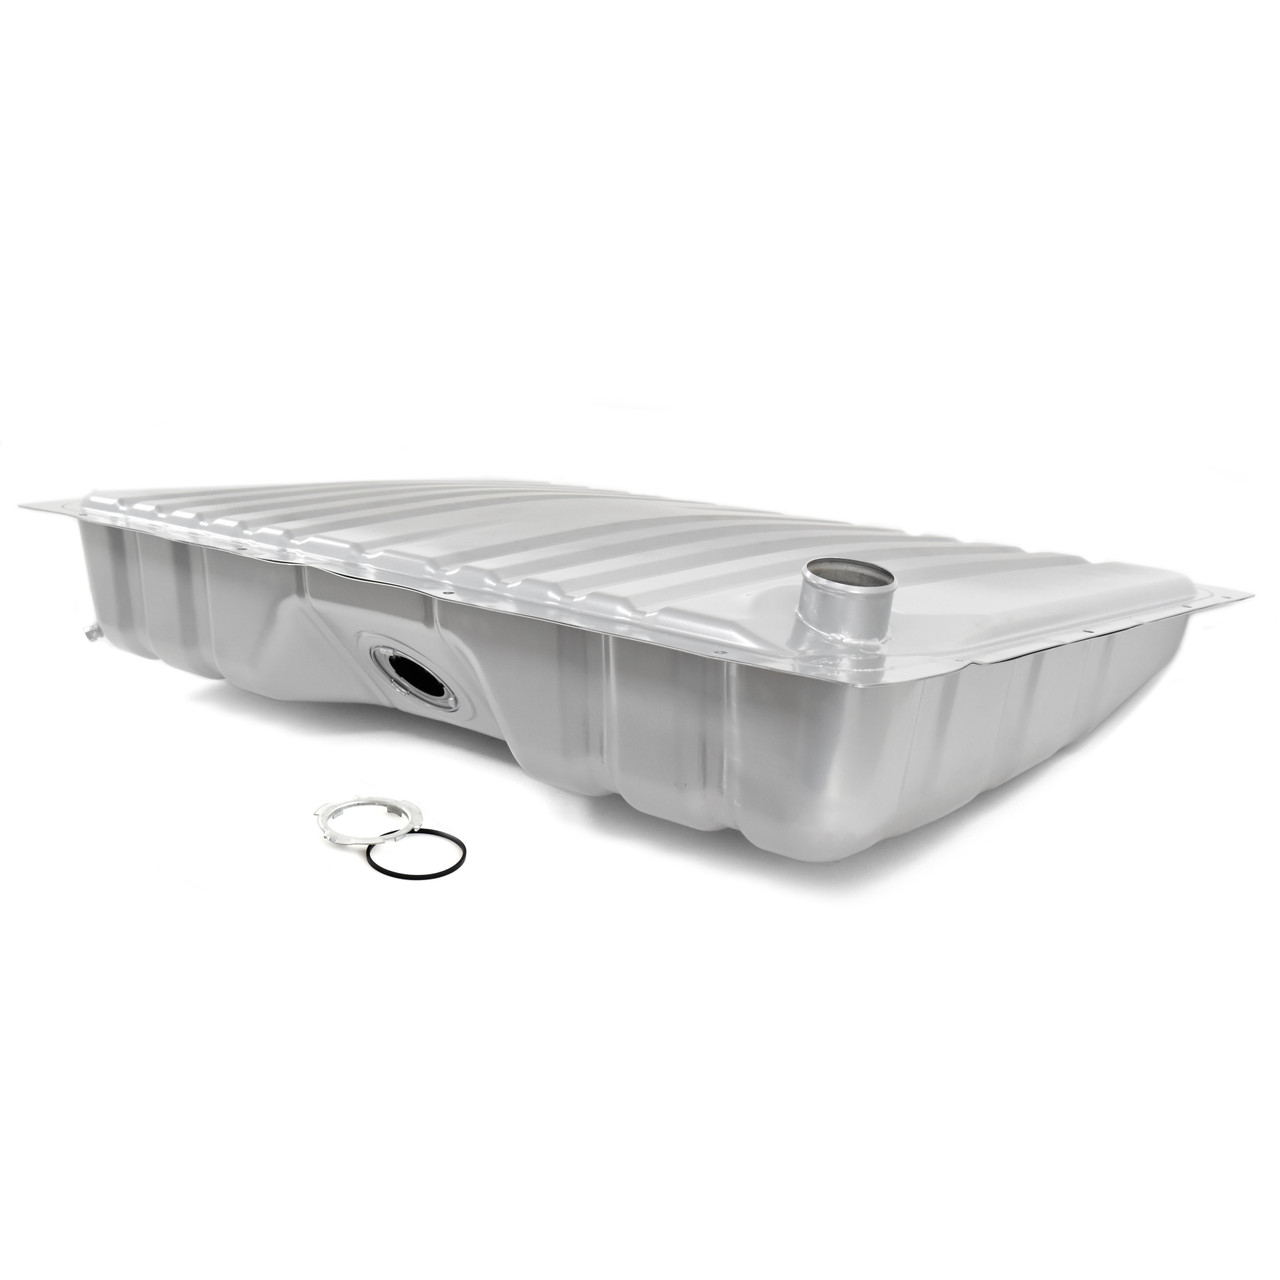 Fuel Tank With Drain 16 Gallon Except Station Wagon [FC-EG005]